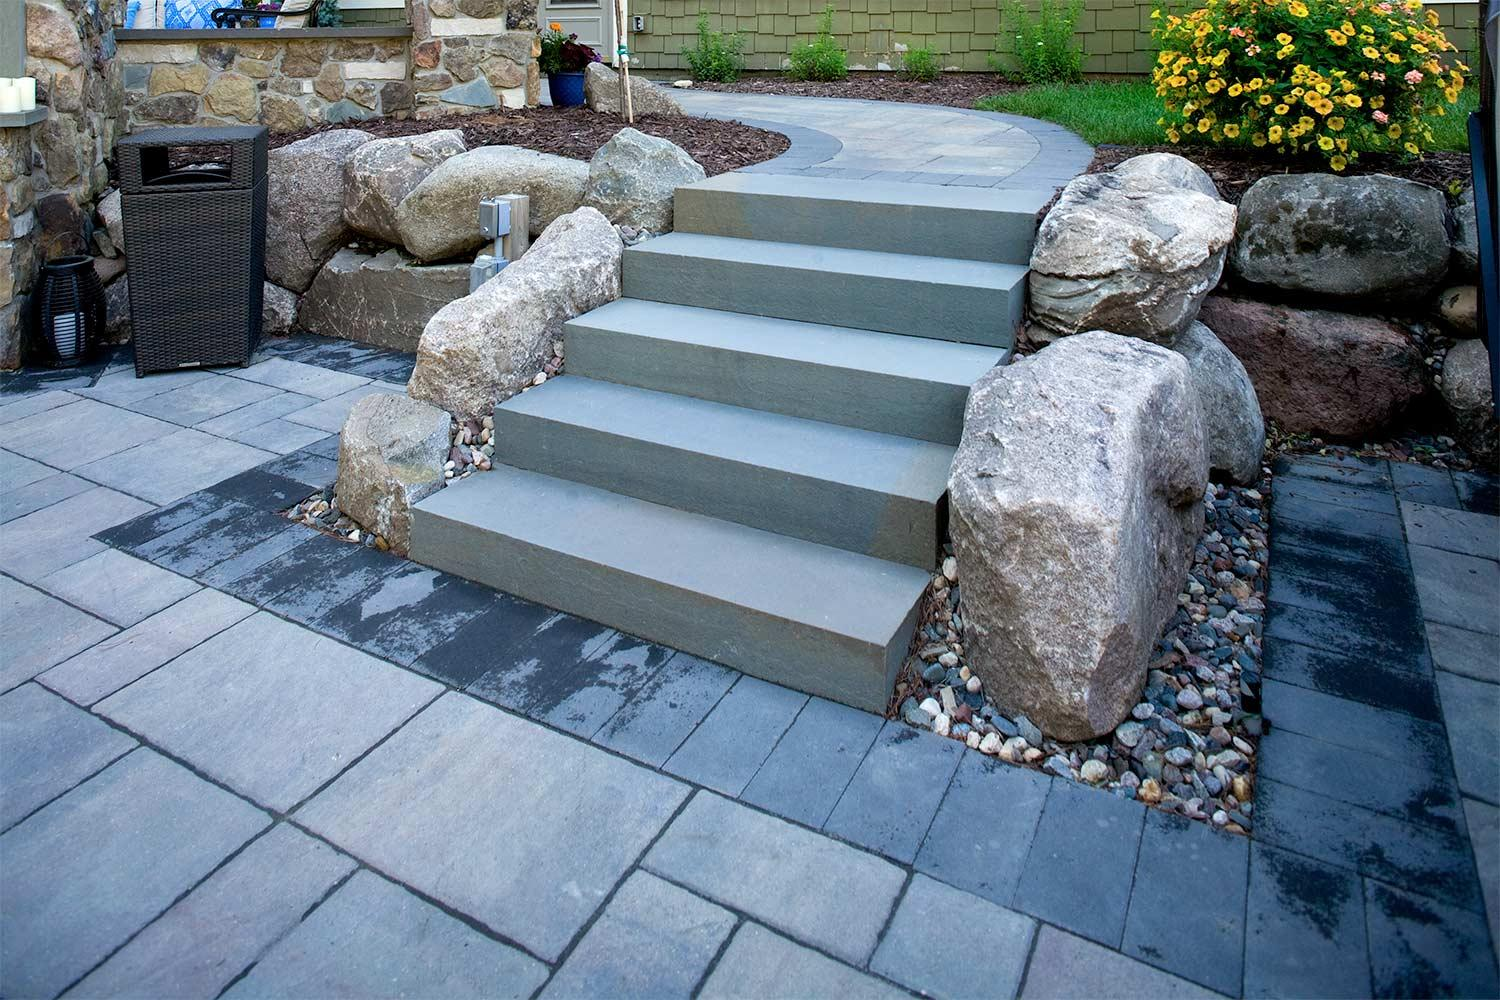 Outdoor stone stair case, boulder retaining wall, and paver patio.